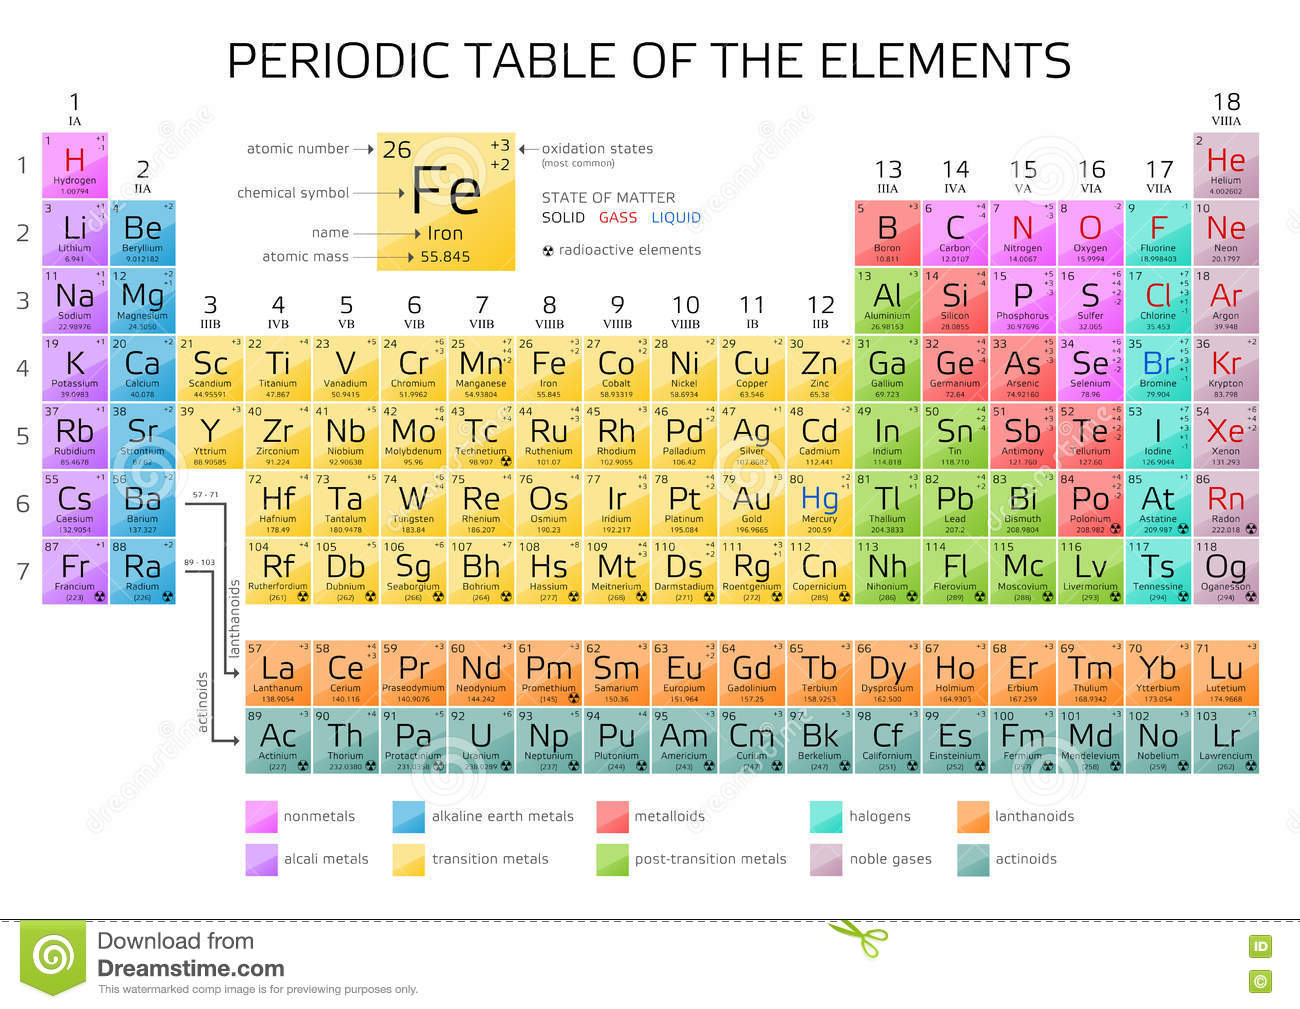 steel symbol periodic table gallery periodic table images nuclear symbol radiation symbol - Periodic Table Nuclear Symbol